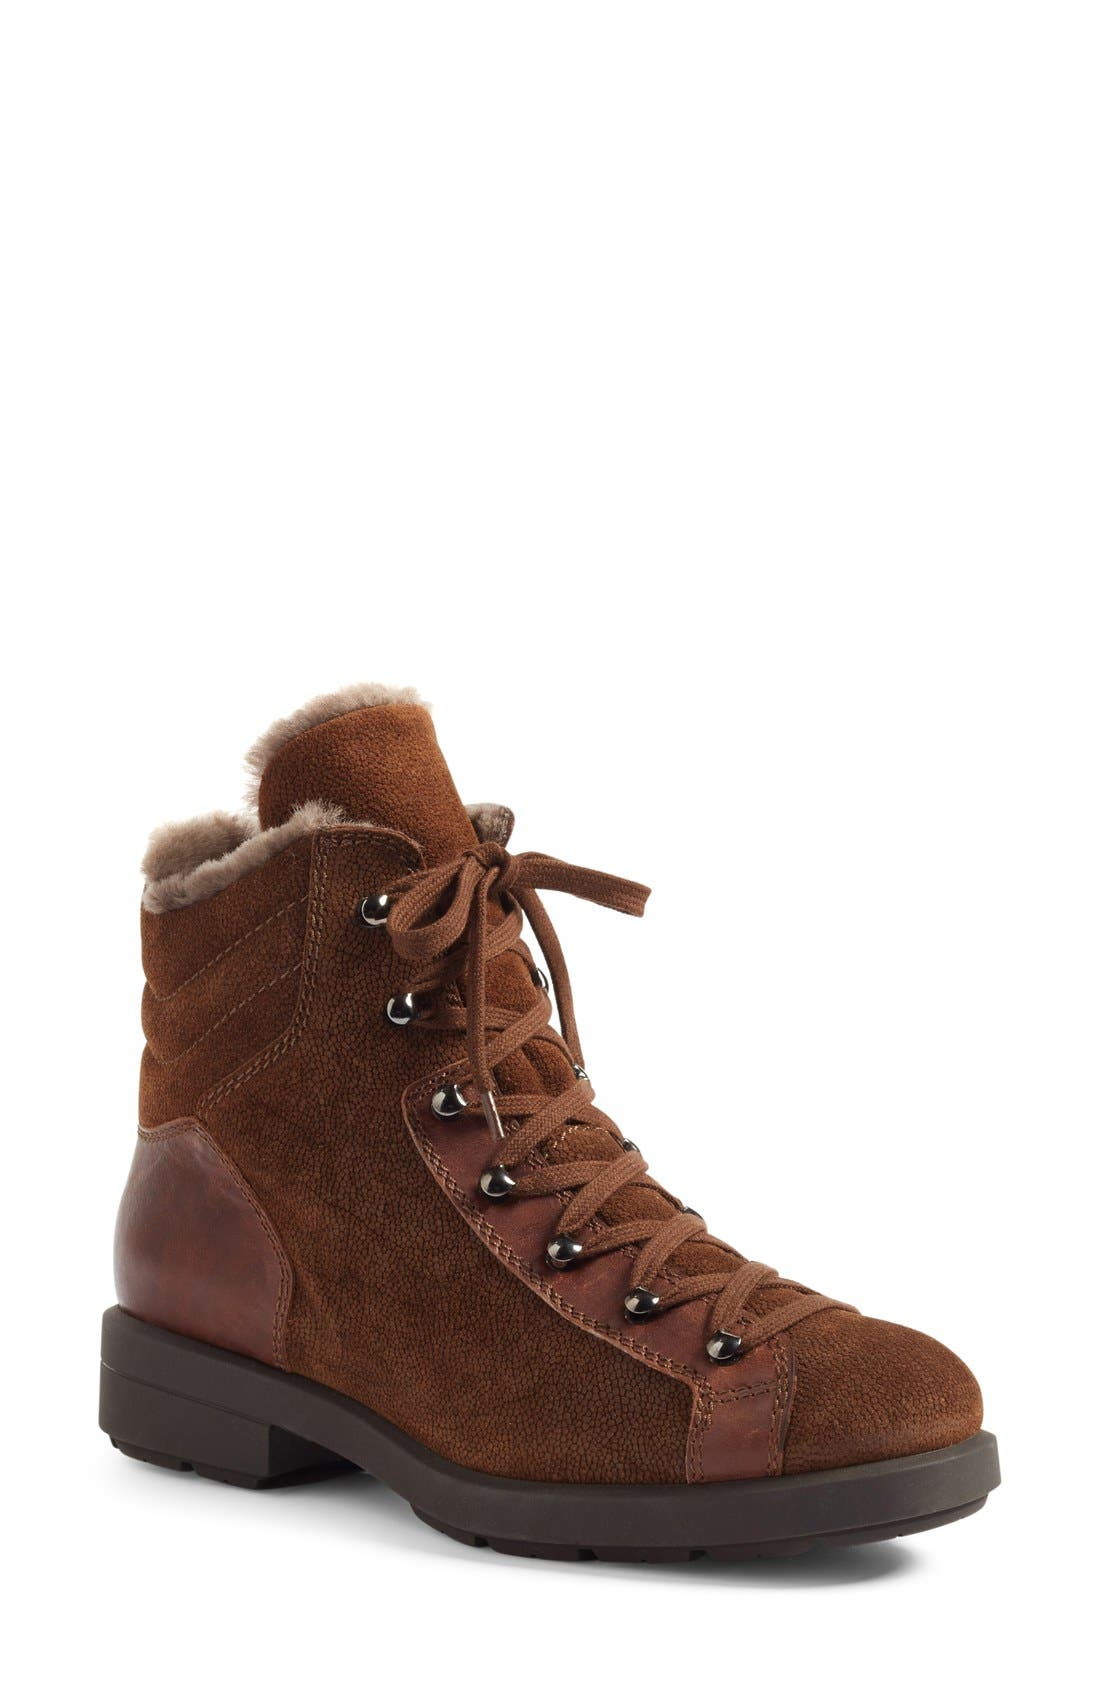 Main Image - Aquatalia Lettie Weatherproof Lace-Up Boot (Women)